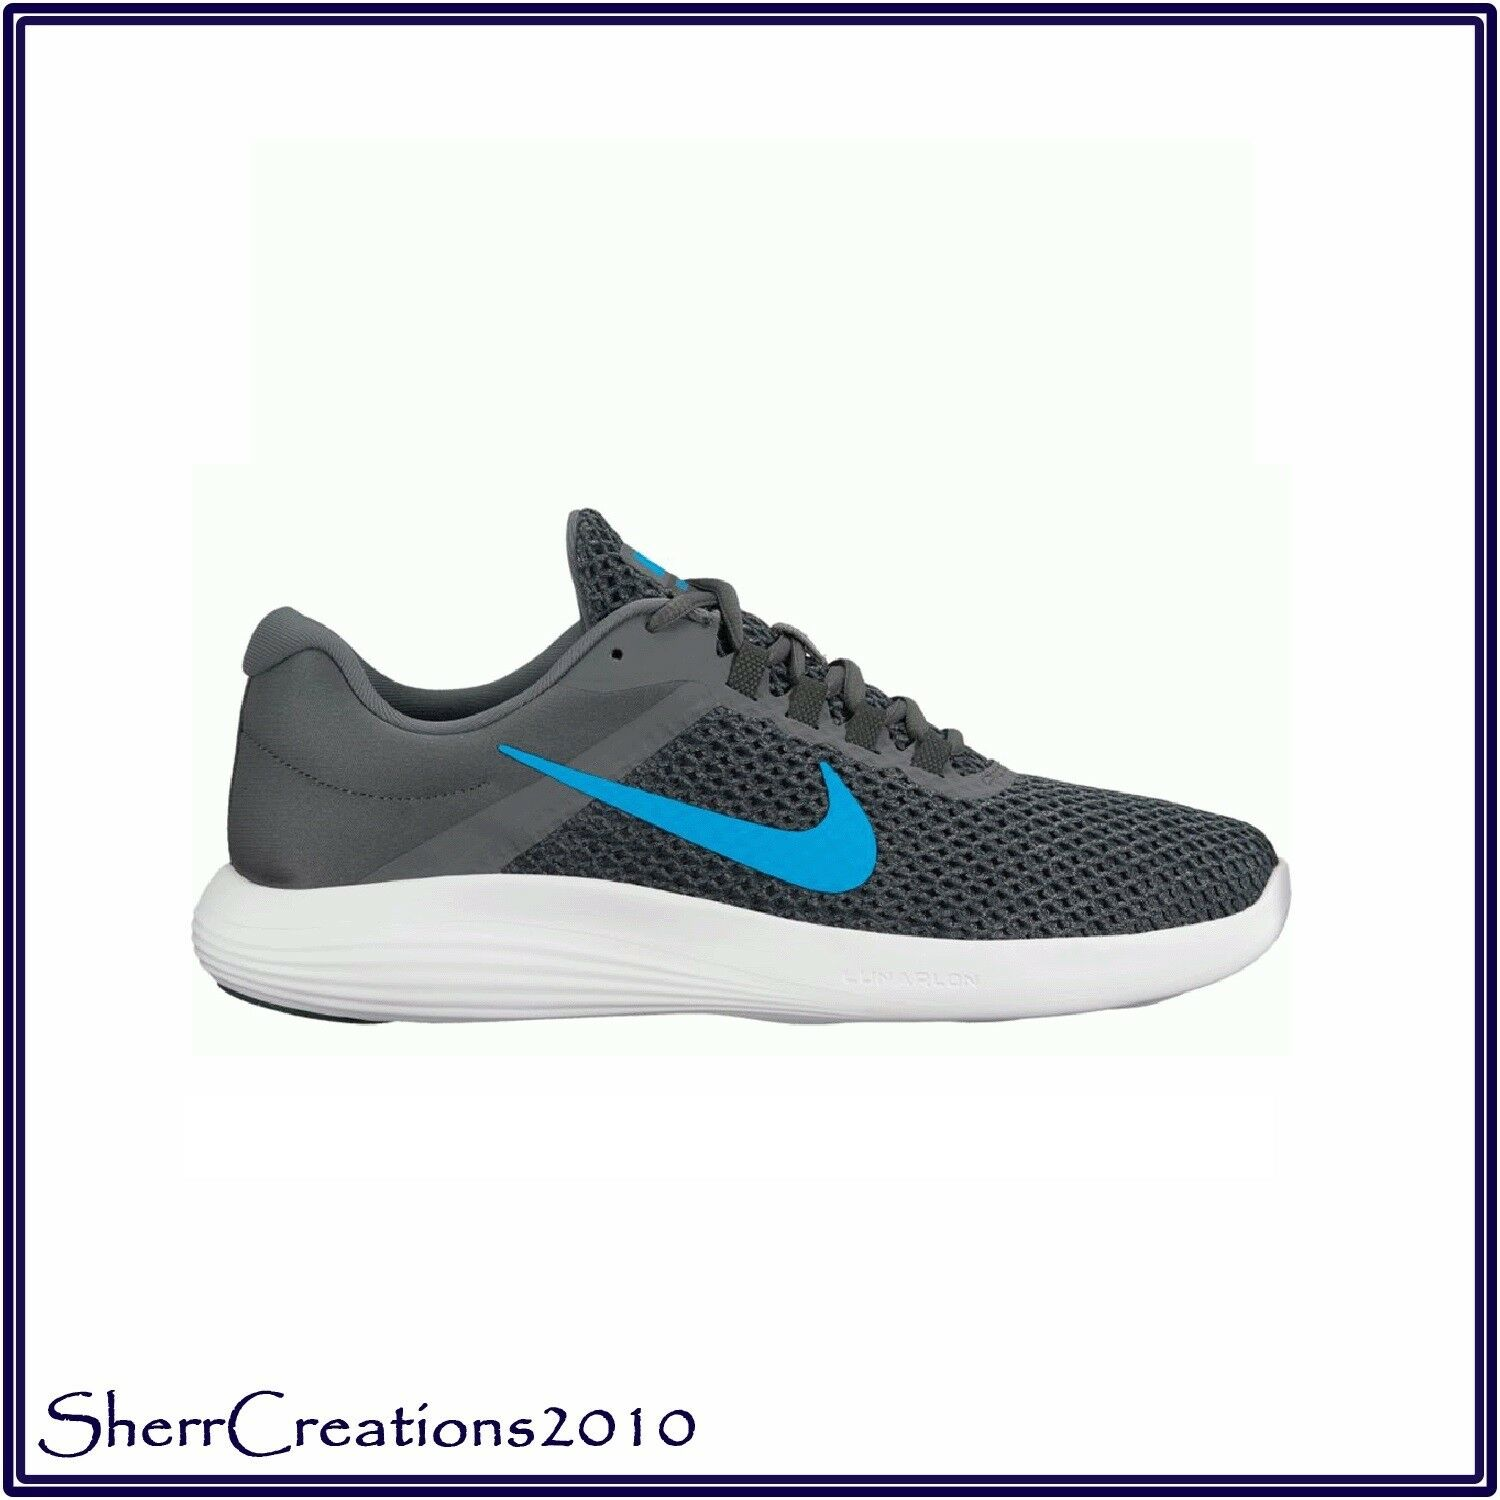 New Athletic Nike 908986-003 Men's Lunarconverge 2 Running Athletic New Shoes 9f3b7b